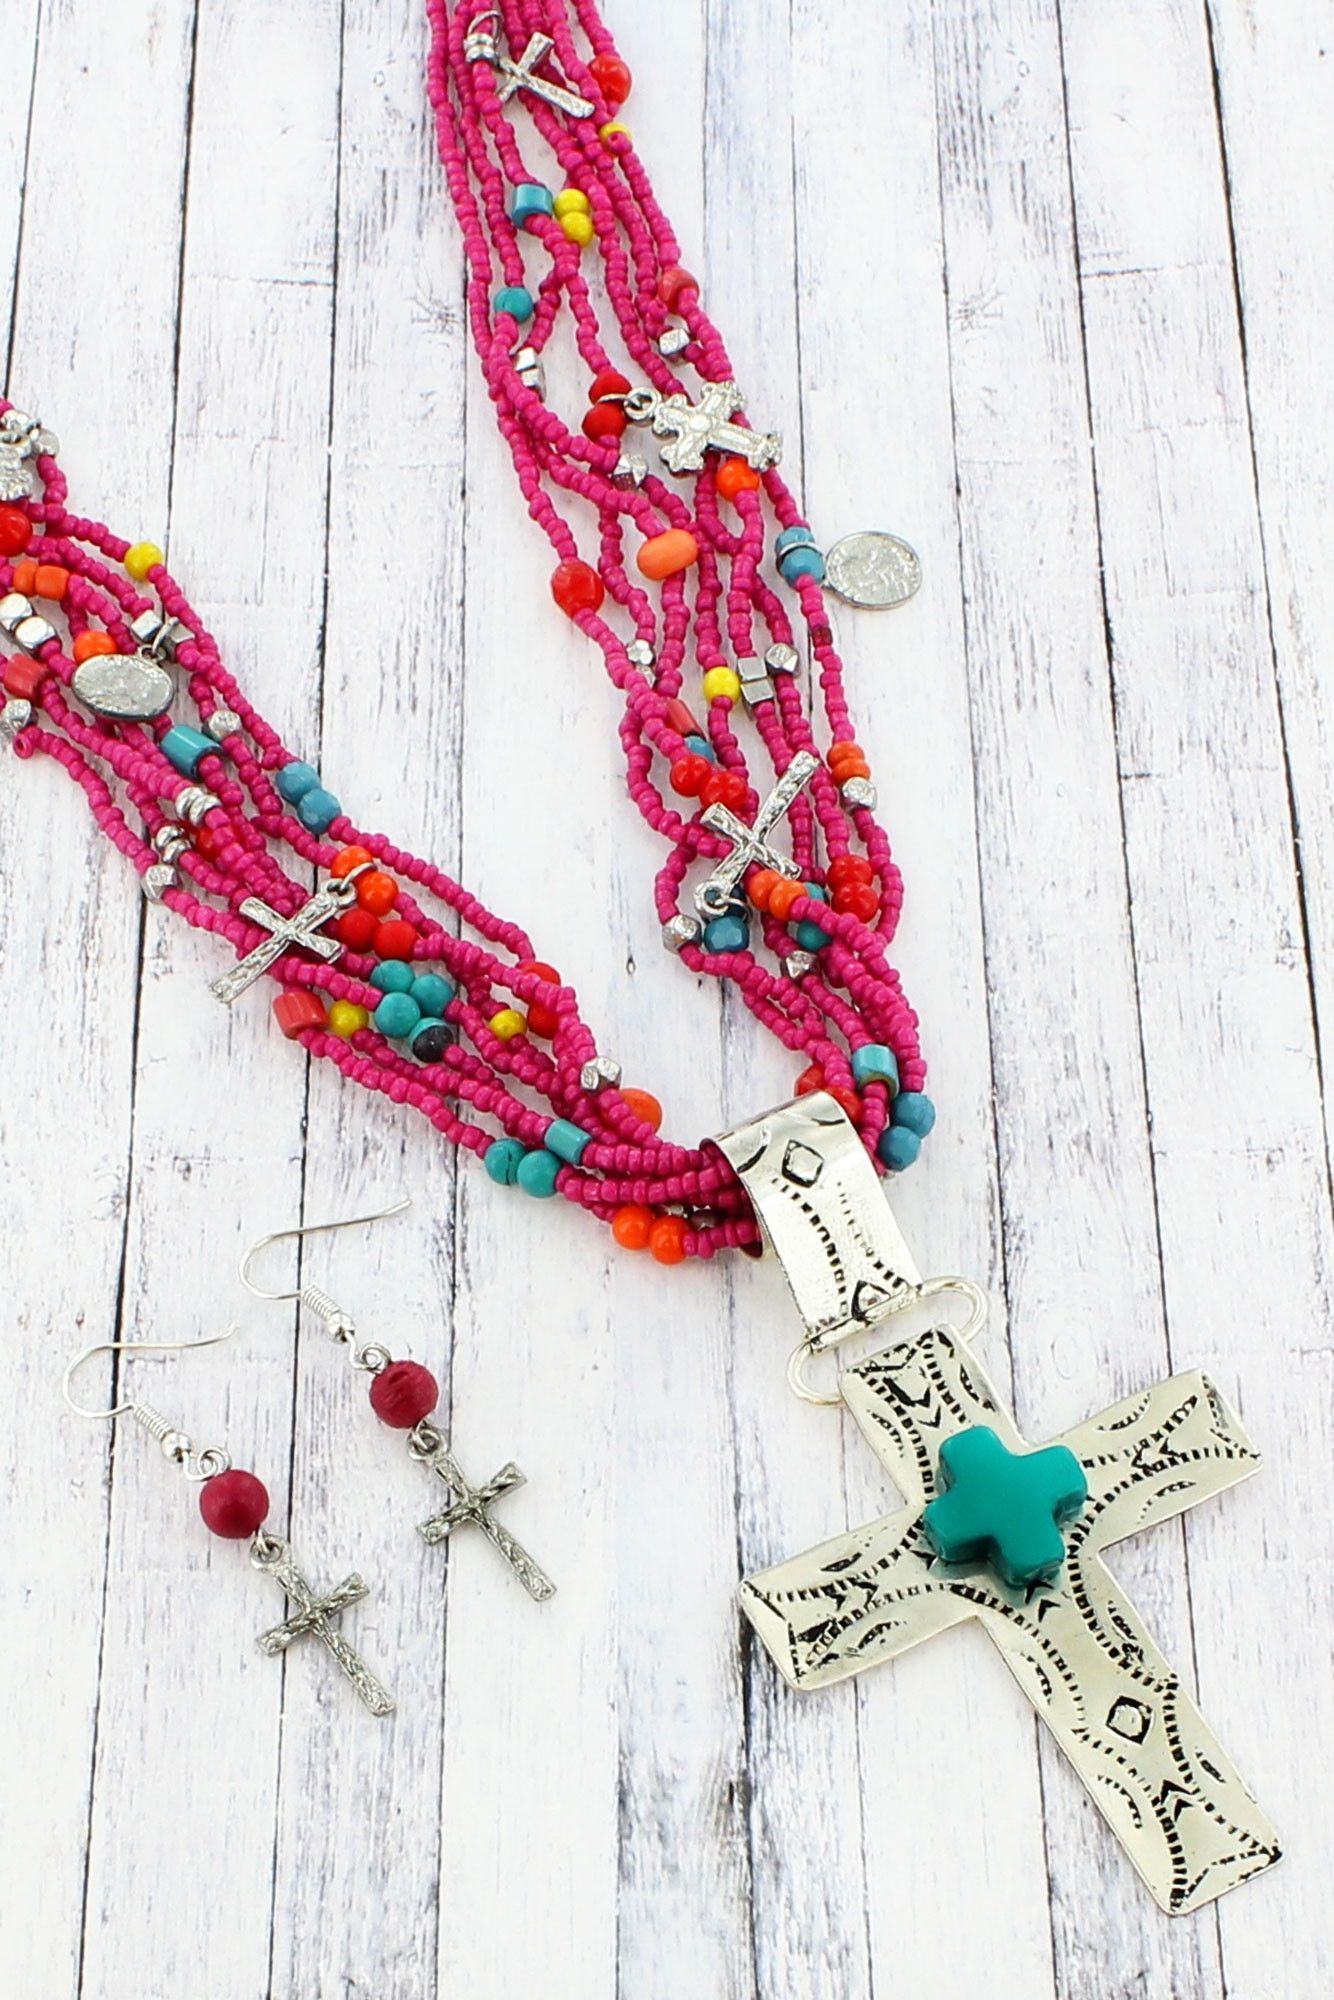 Fuchsia, Turquoise, and Silvertone Cross Multi-Strand Beaded Necklace and Earring Set #SS0012-MU1